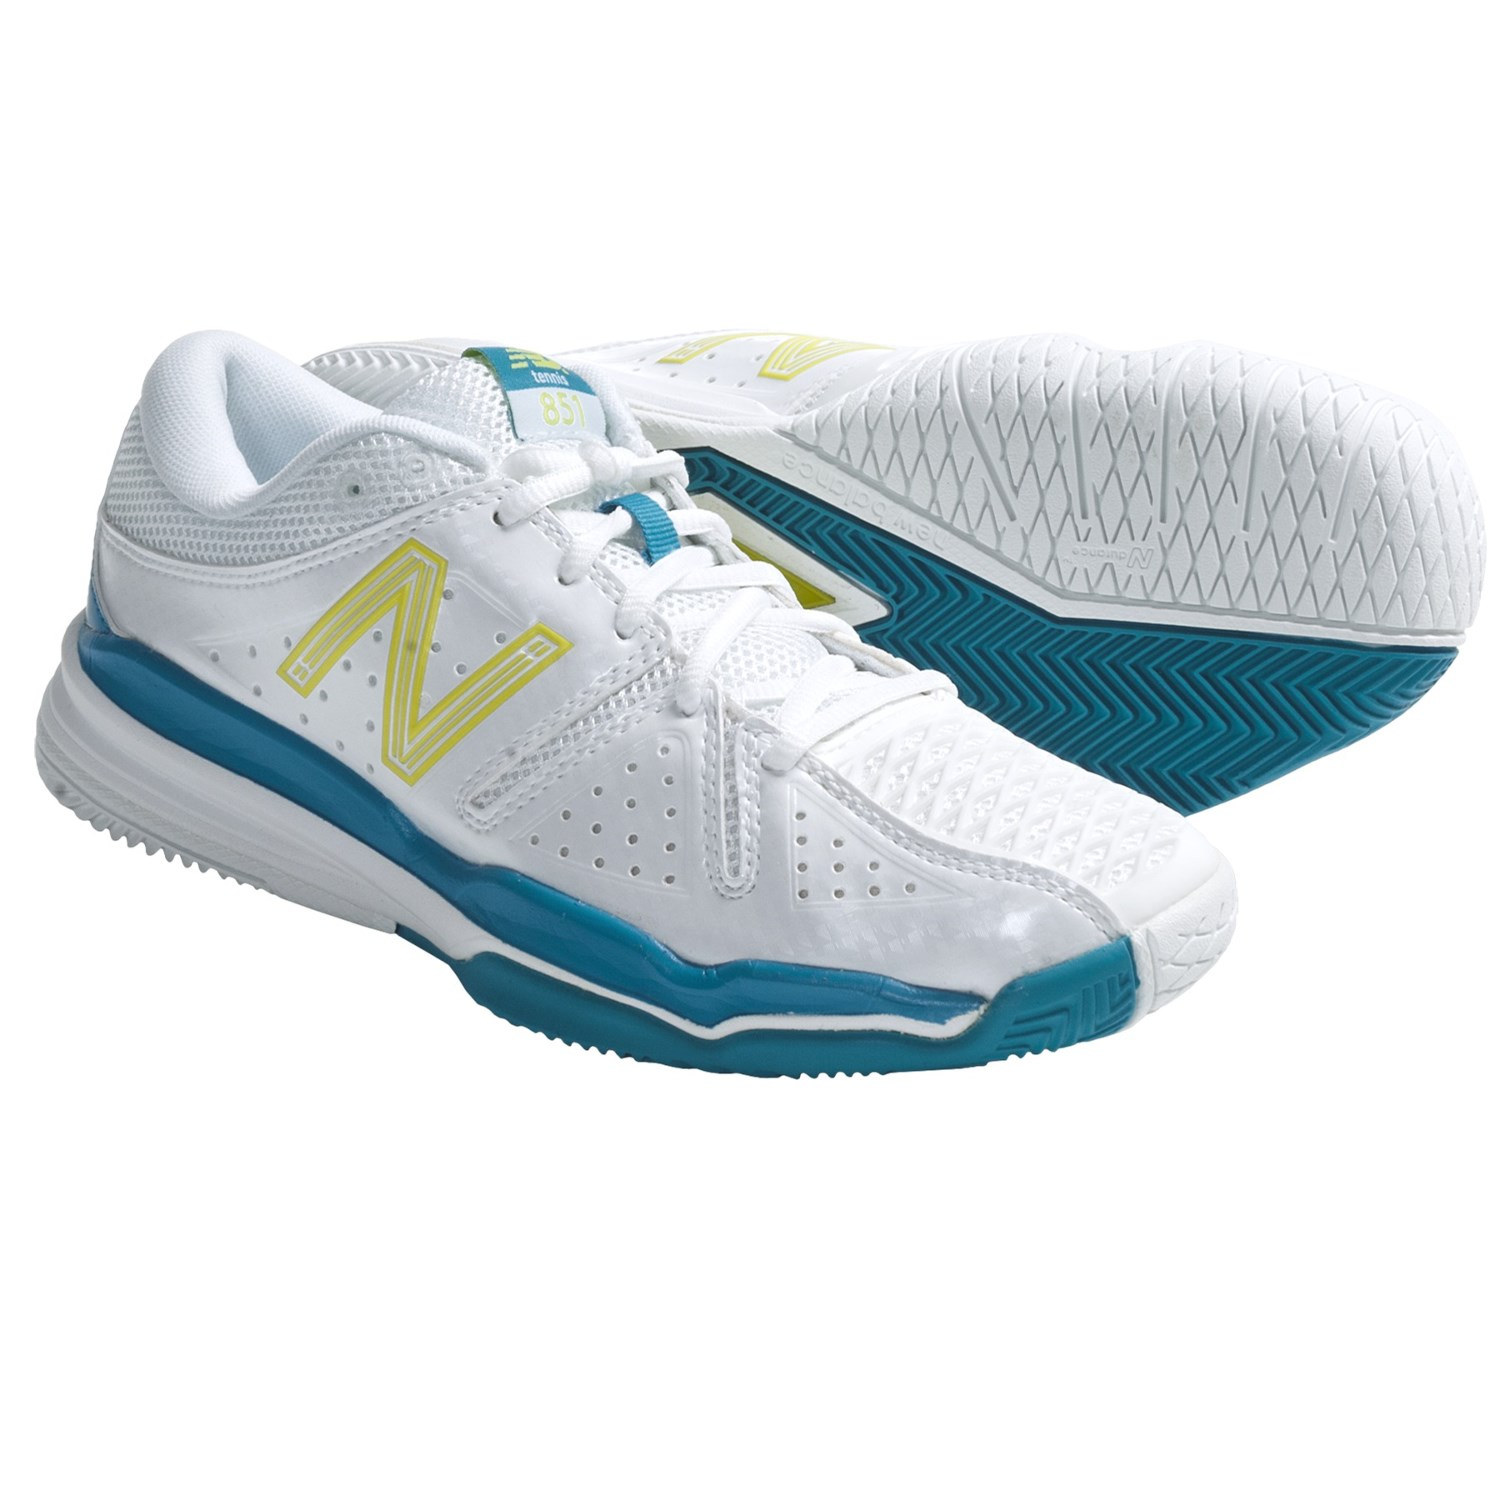 New balance tennis shoes for women   Women clothing stores